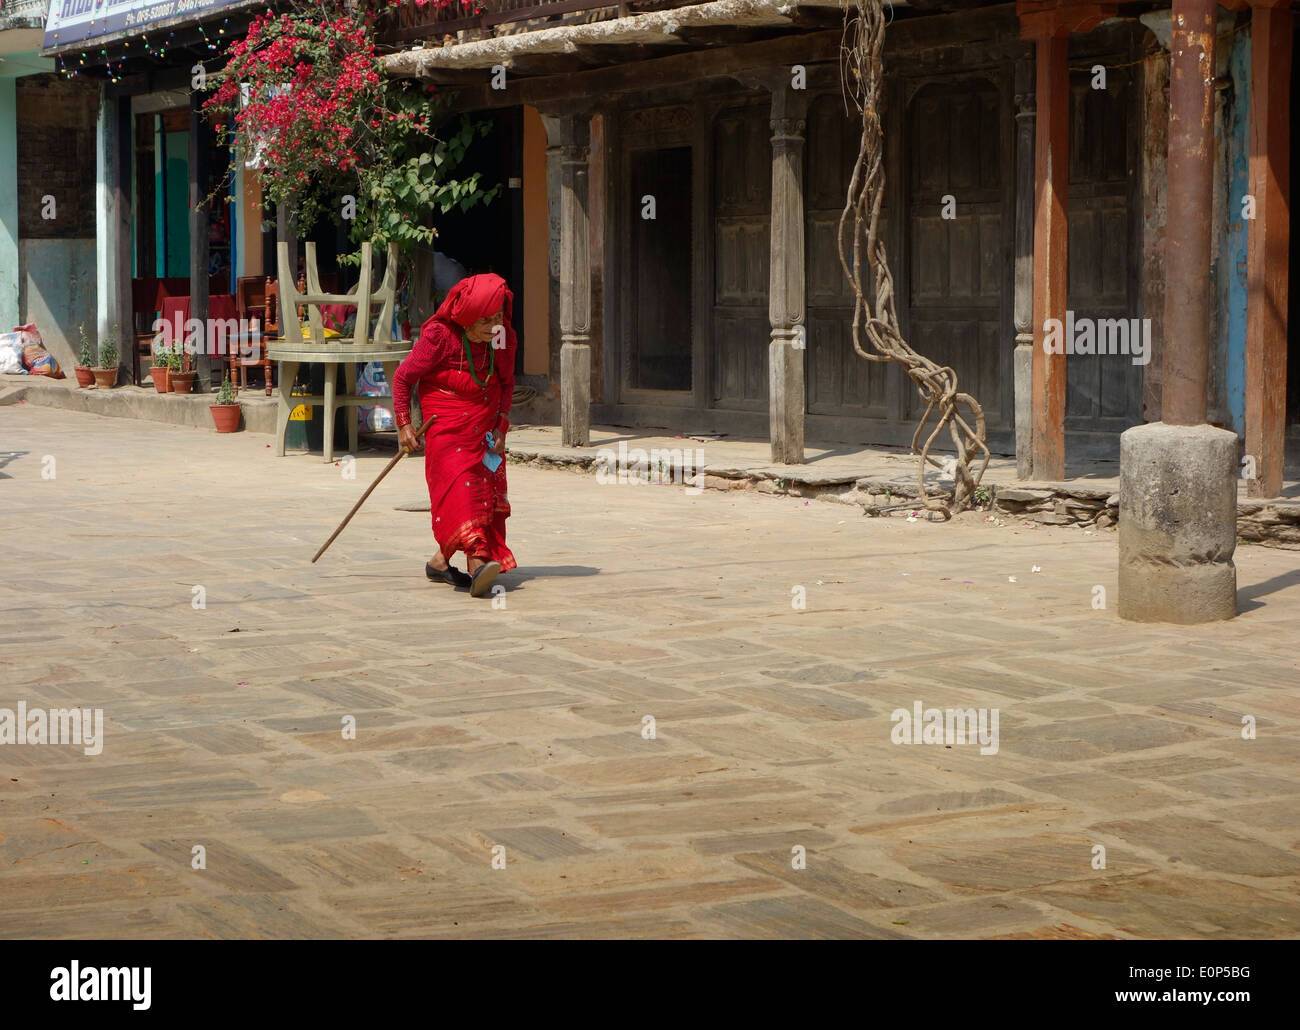 Old lady in red walking up town - Stock Image